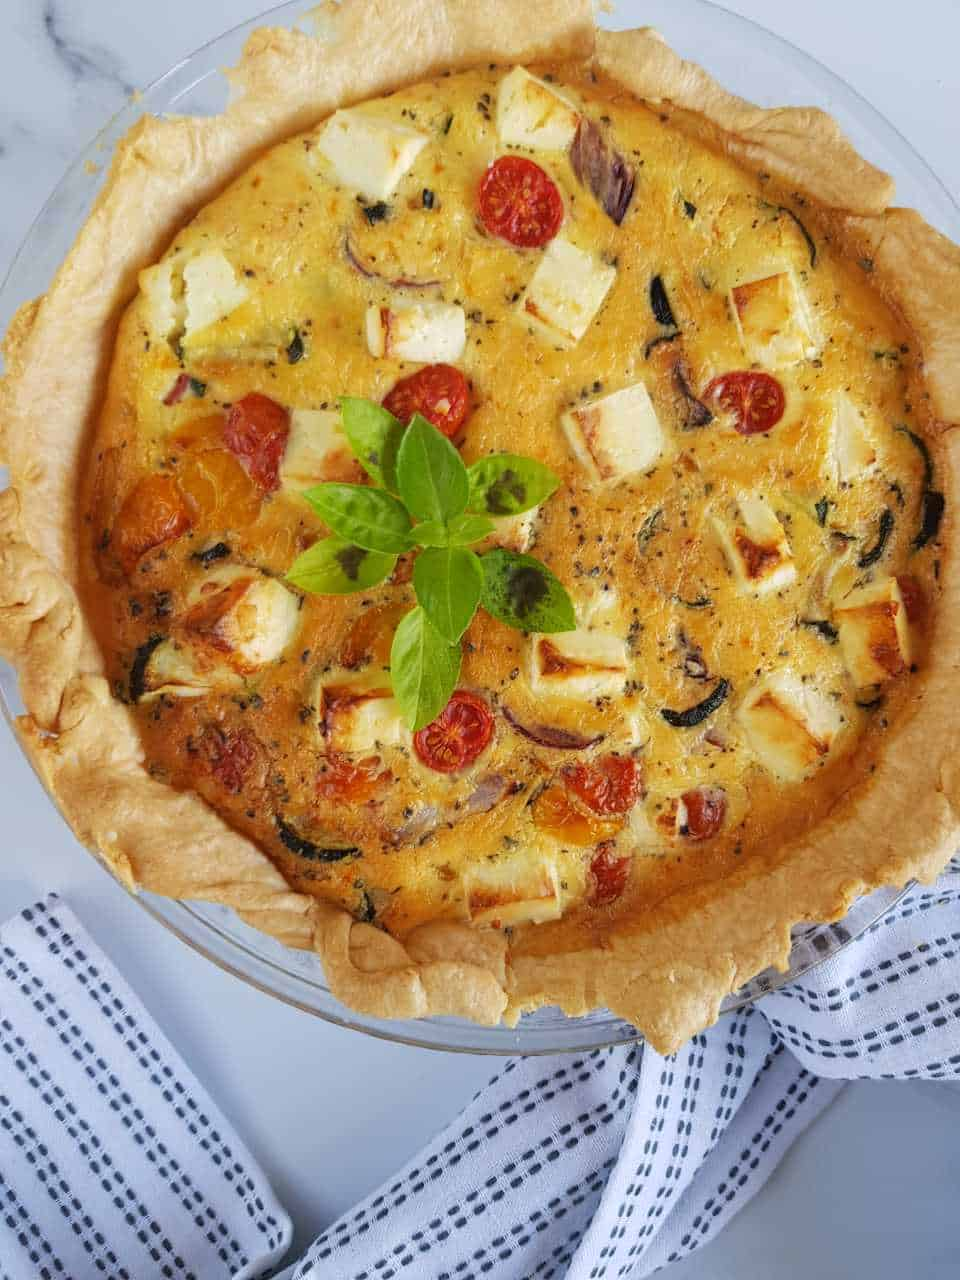 Roasted vegetable and feta quiche on a marble table with a tablecloth on the side.